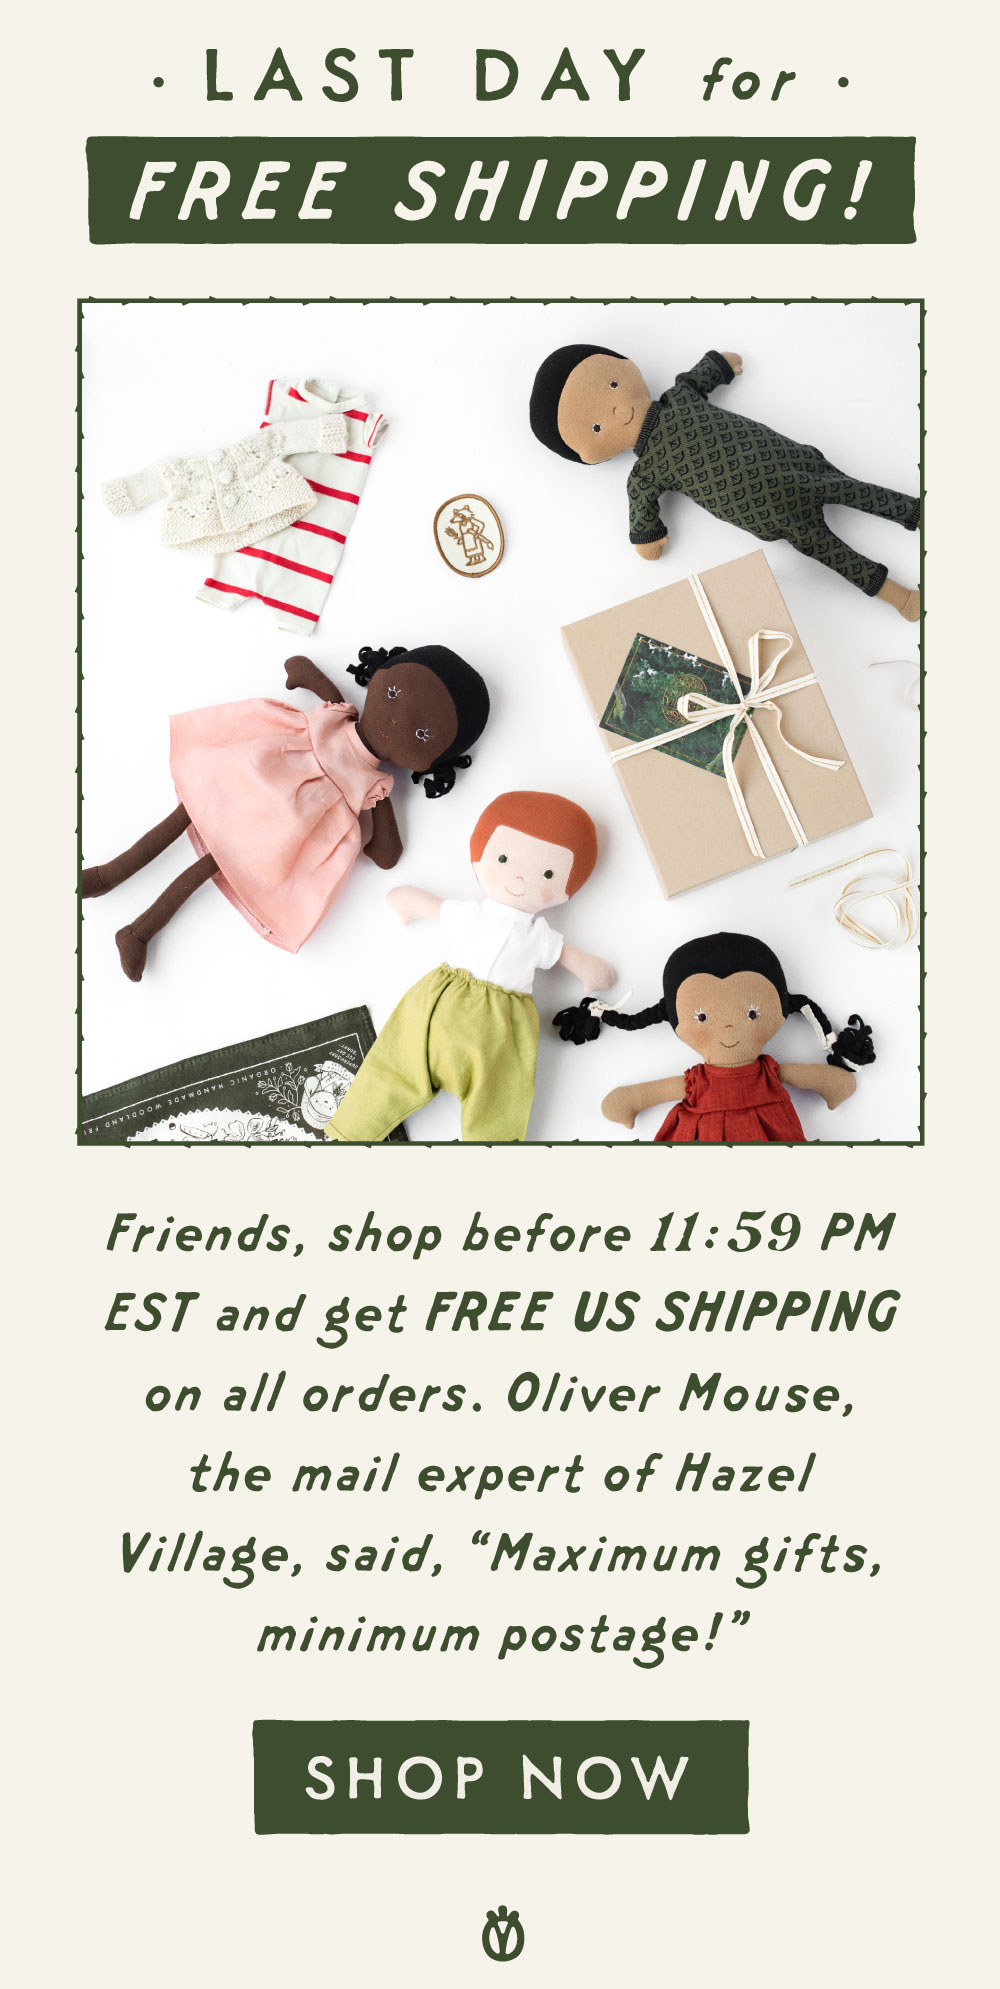 """Last day for free shipping! Friends, shop before 11:59 PM Eastern and get FREE US SHIPPING on all orders. Oliver Mouse, the mail expert of Hazel Village, said, """"Maximum gifts, minimum postage!"""""""